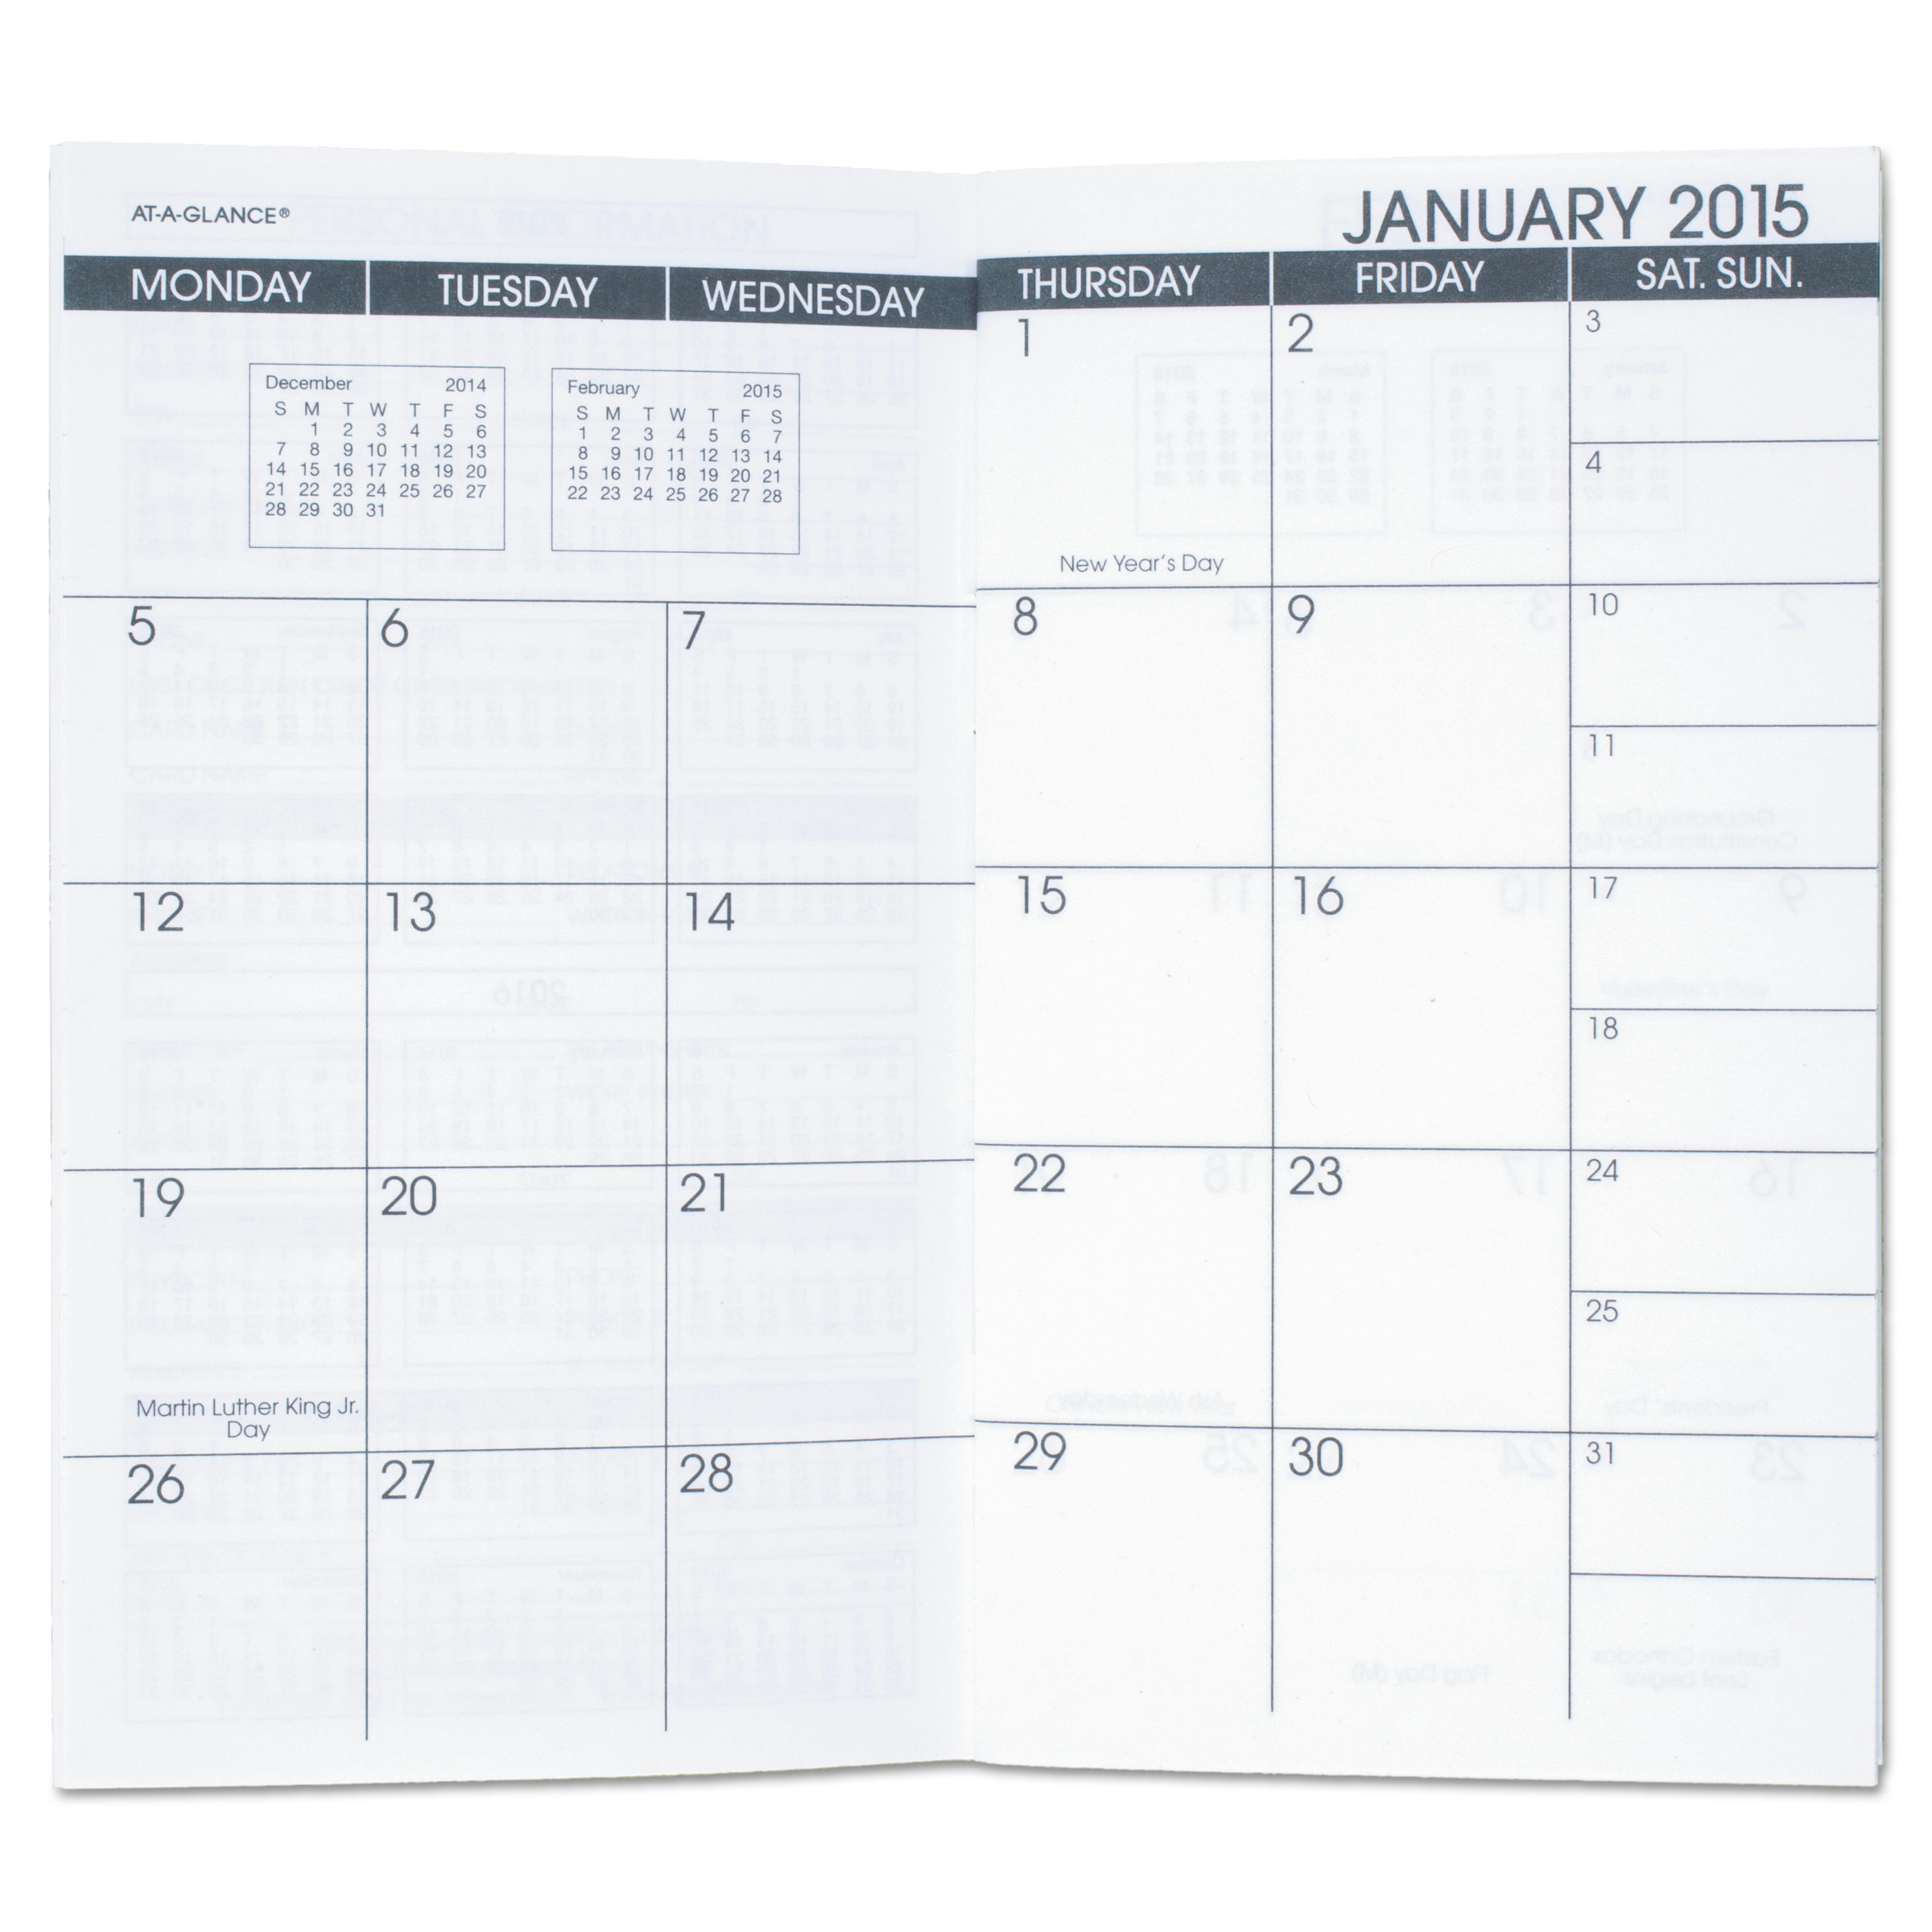 AT-A-GLANCE Pocket Size Monthly Planner Refill, 3 5 8 x 6 1 8, White, 2017-2018 by AT-A-GLANCE